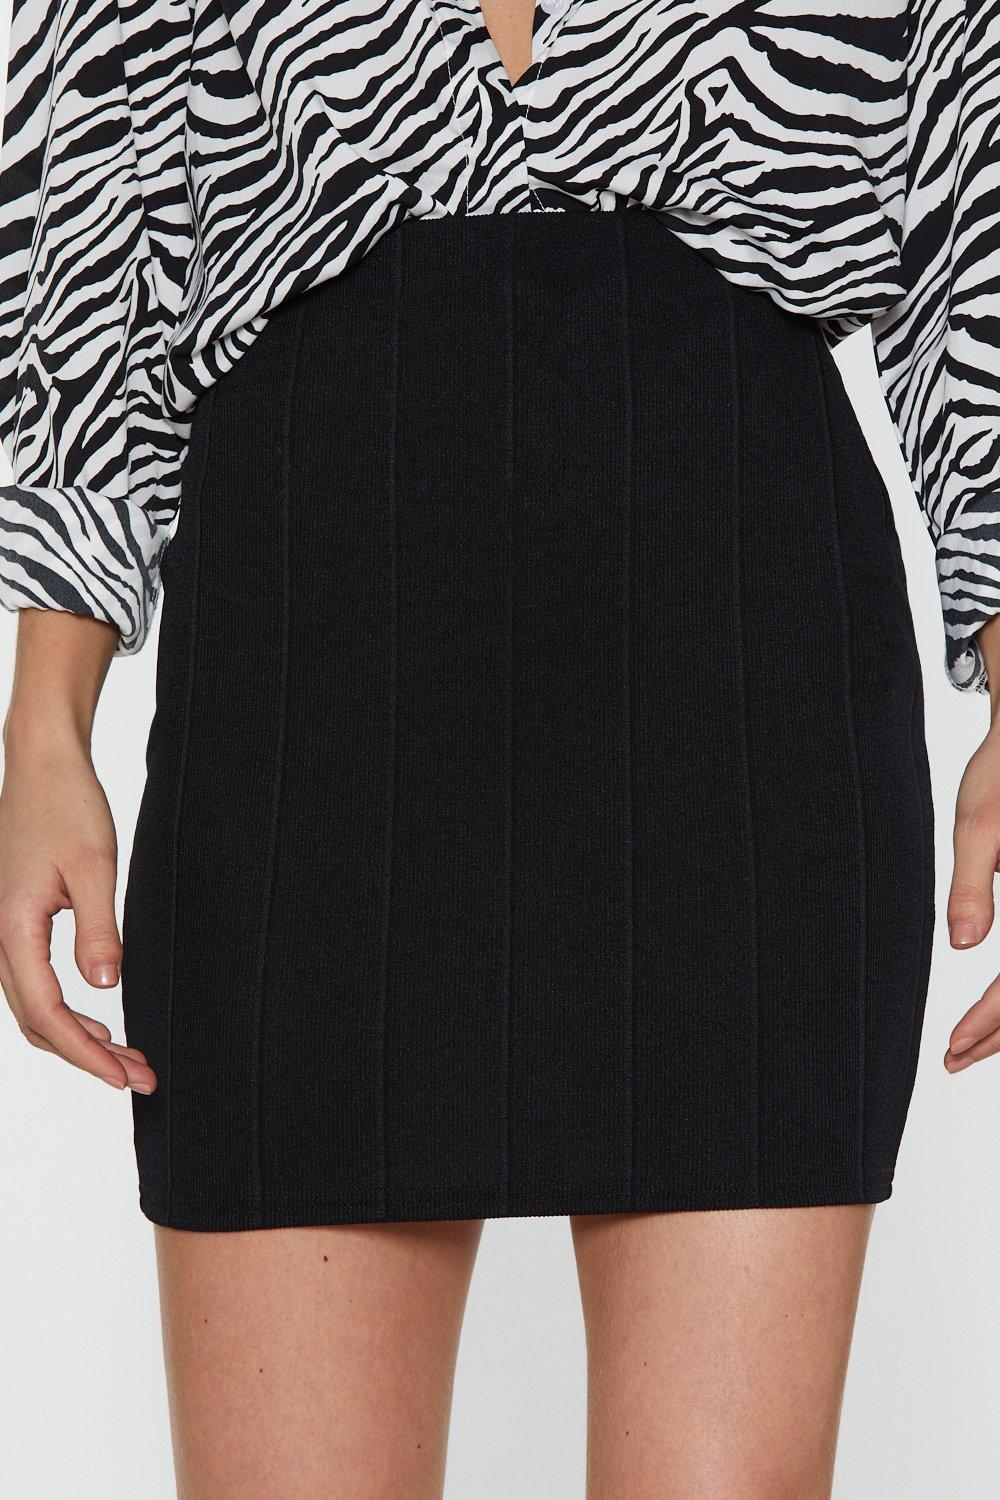 08dd7483e190e3 Bandage Together Bodycon Mini Skirt | Shop Clothes at Nasty Gal!